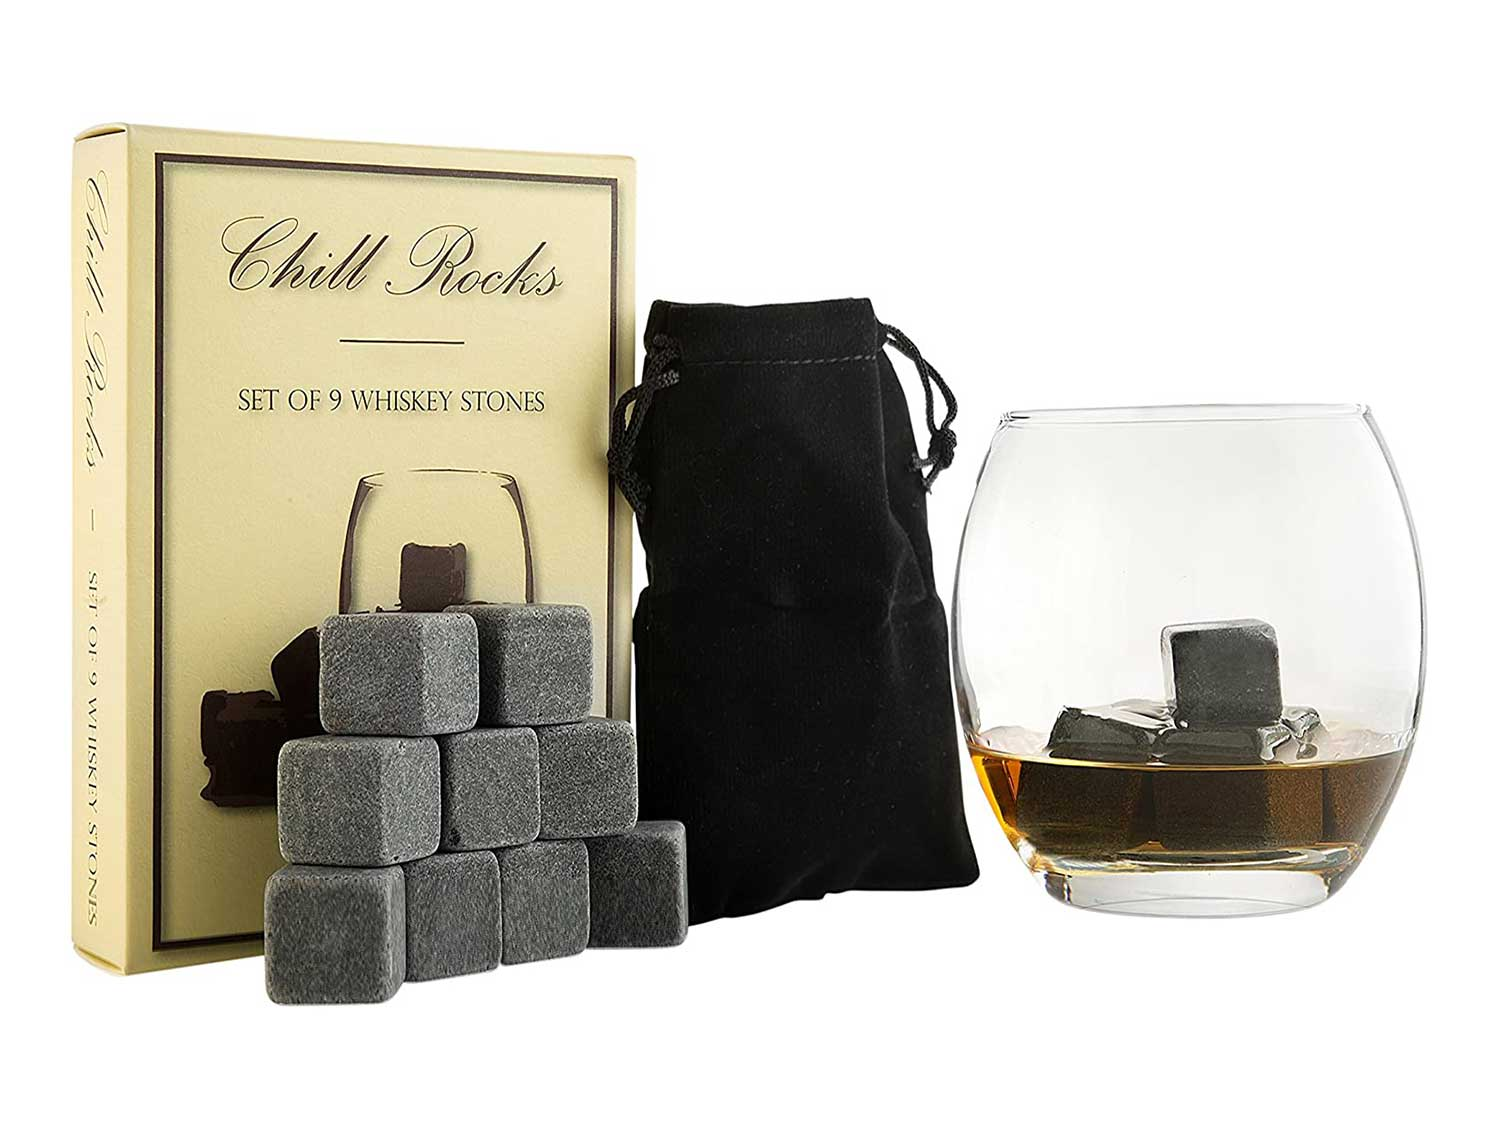 Set of 9 Grey Beverage Chilling Stones [Chill Rocks] Whiskey Stones for Whiskey and other Beverages - in Gift Box with Velvet Carrying Pouch - Made of 100% Pure Soapstone - by Quiseen